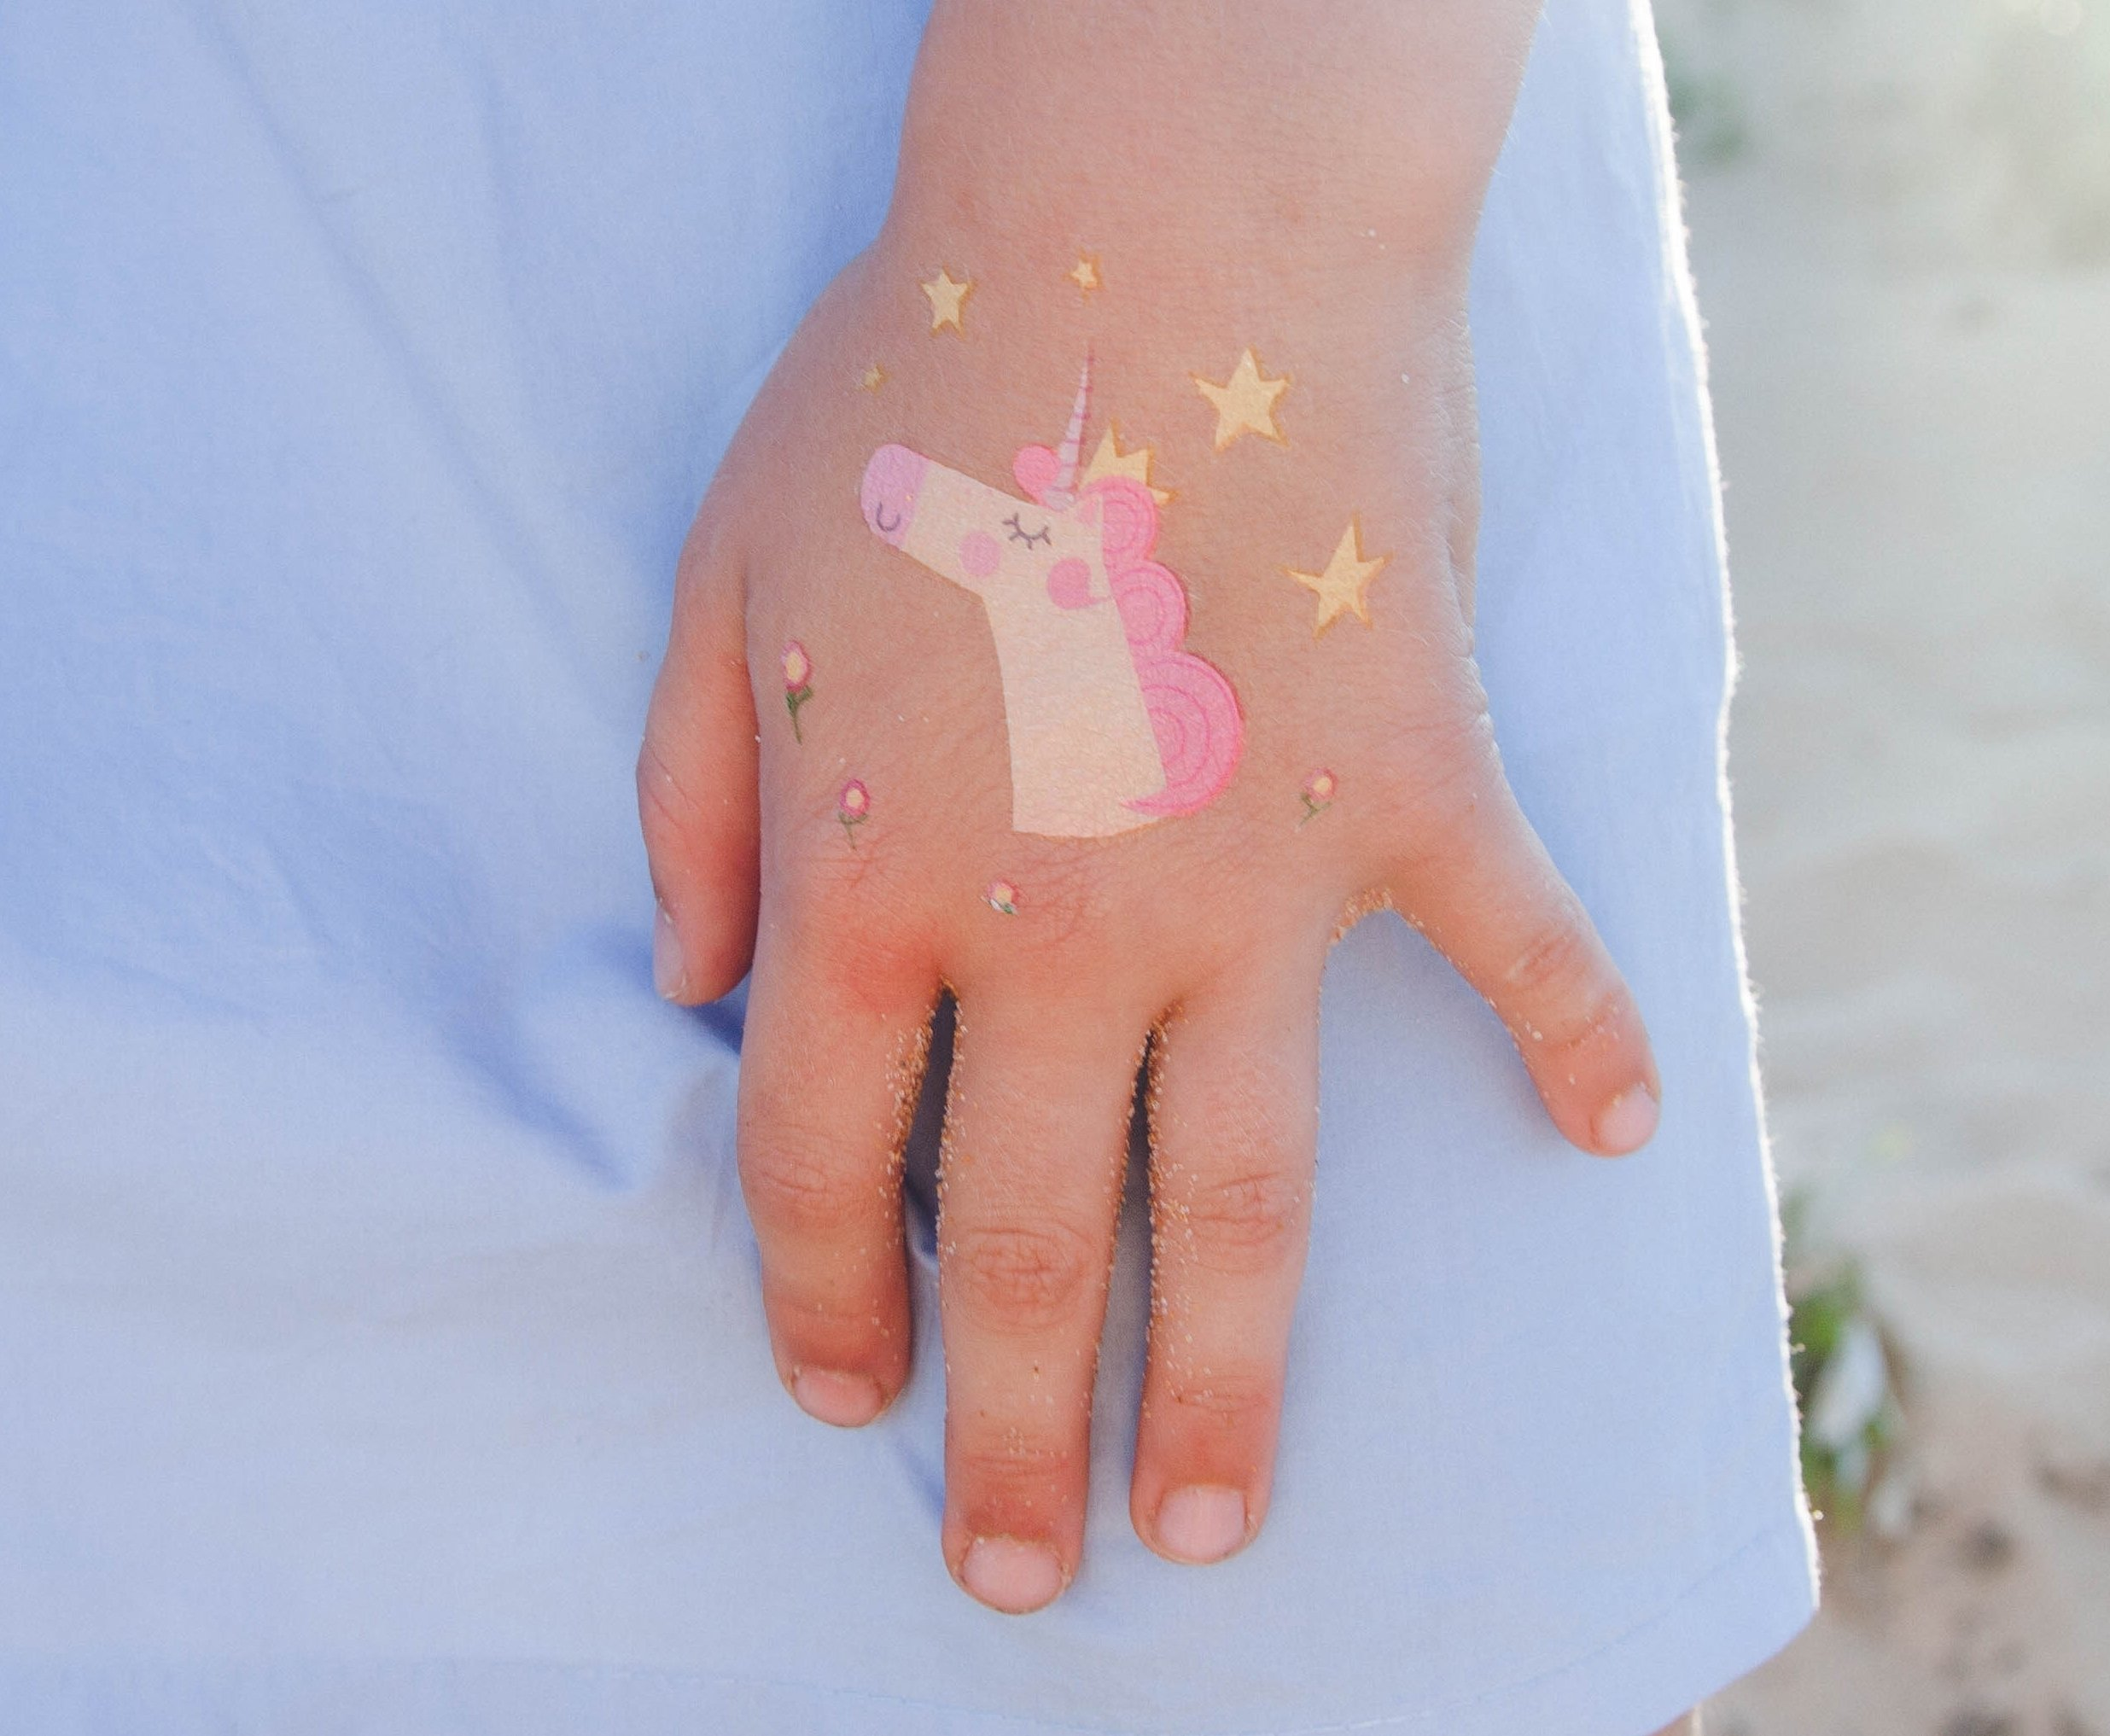 Unicorn Temporary Tattoos for Kids - Unicorn Party Favors, Birthday Decorations and Supplies - Non-toxic and Waterproof - Pack of 16 sheets (32 Fake Tattoos) 8